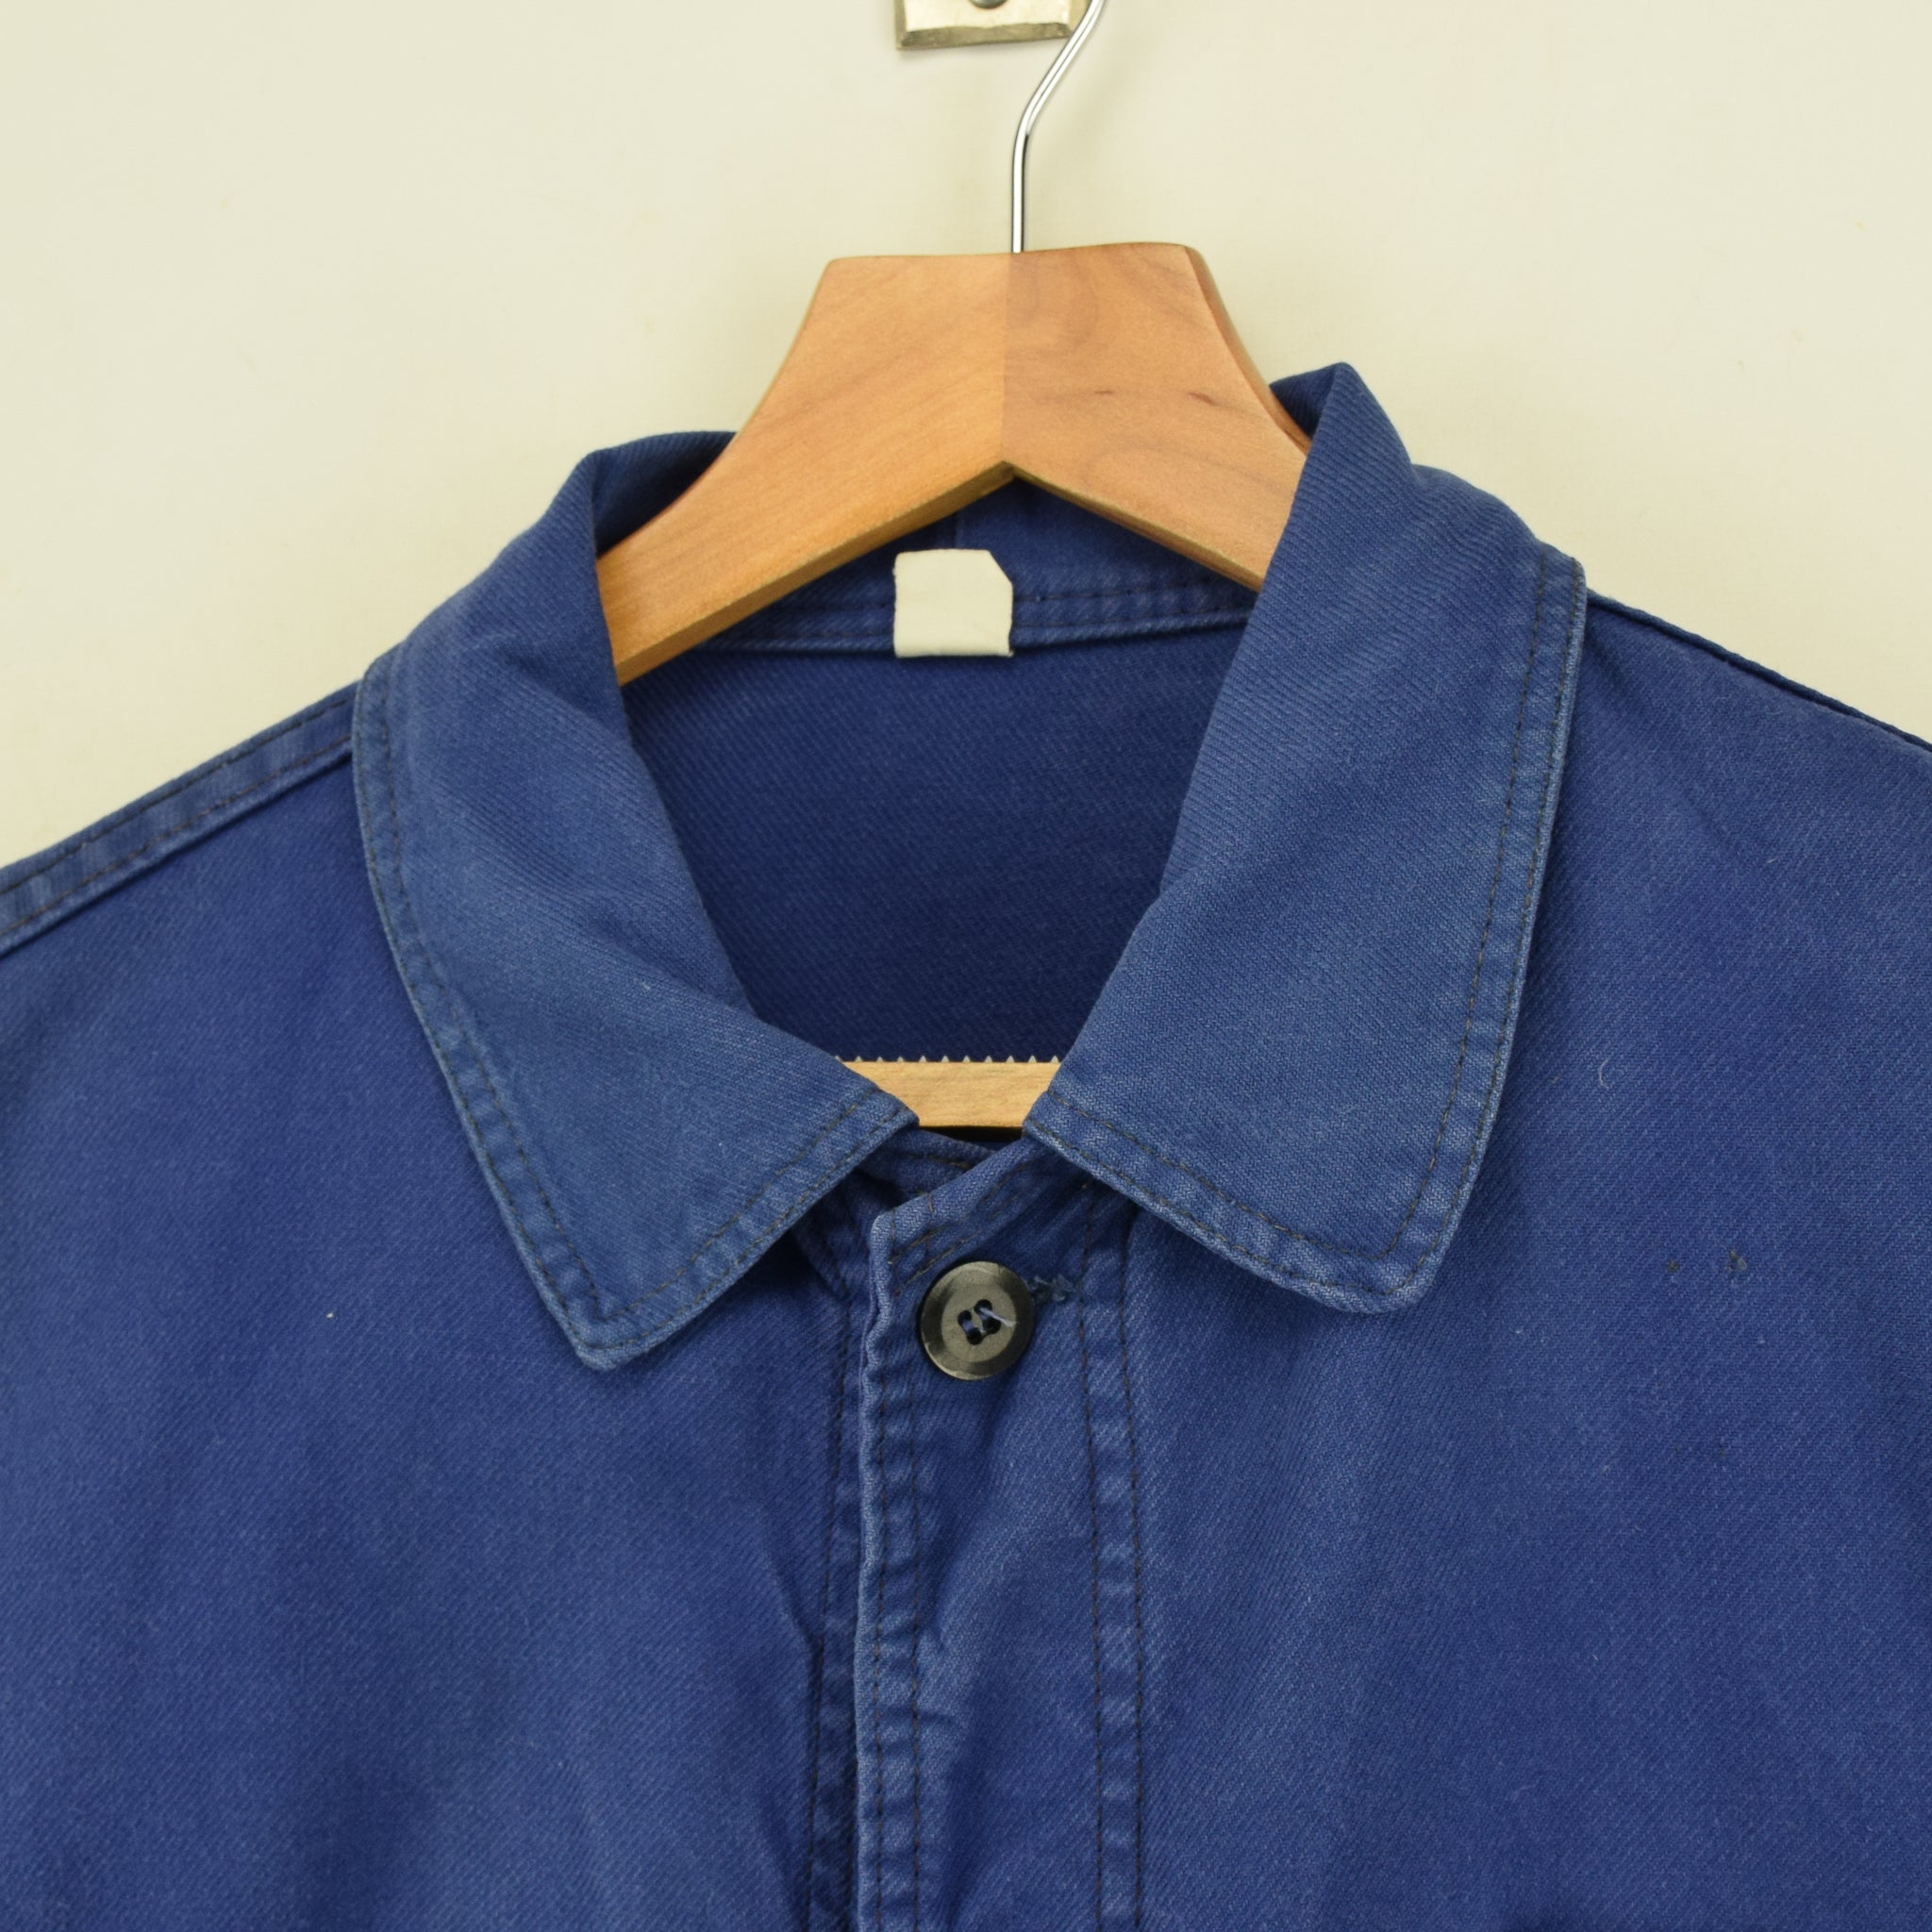 Vintage Washed Blue French Worker Sanforized Cotton Chore Jacket M collar